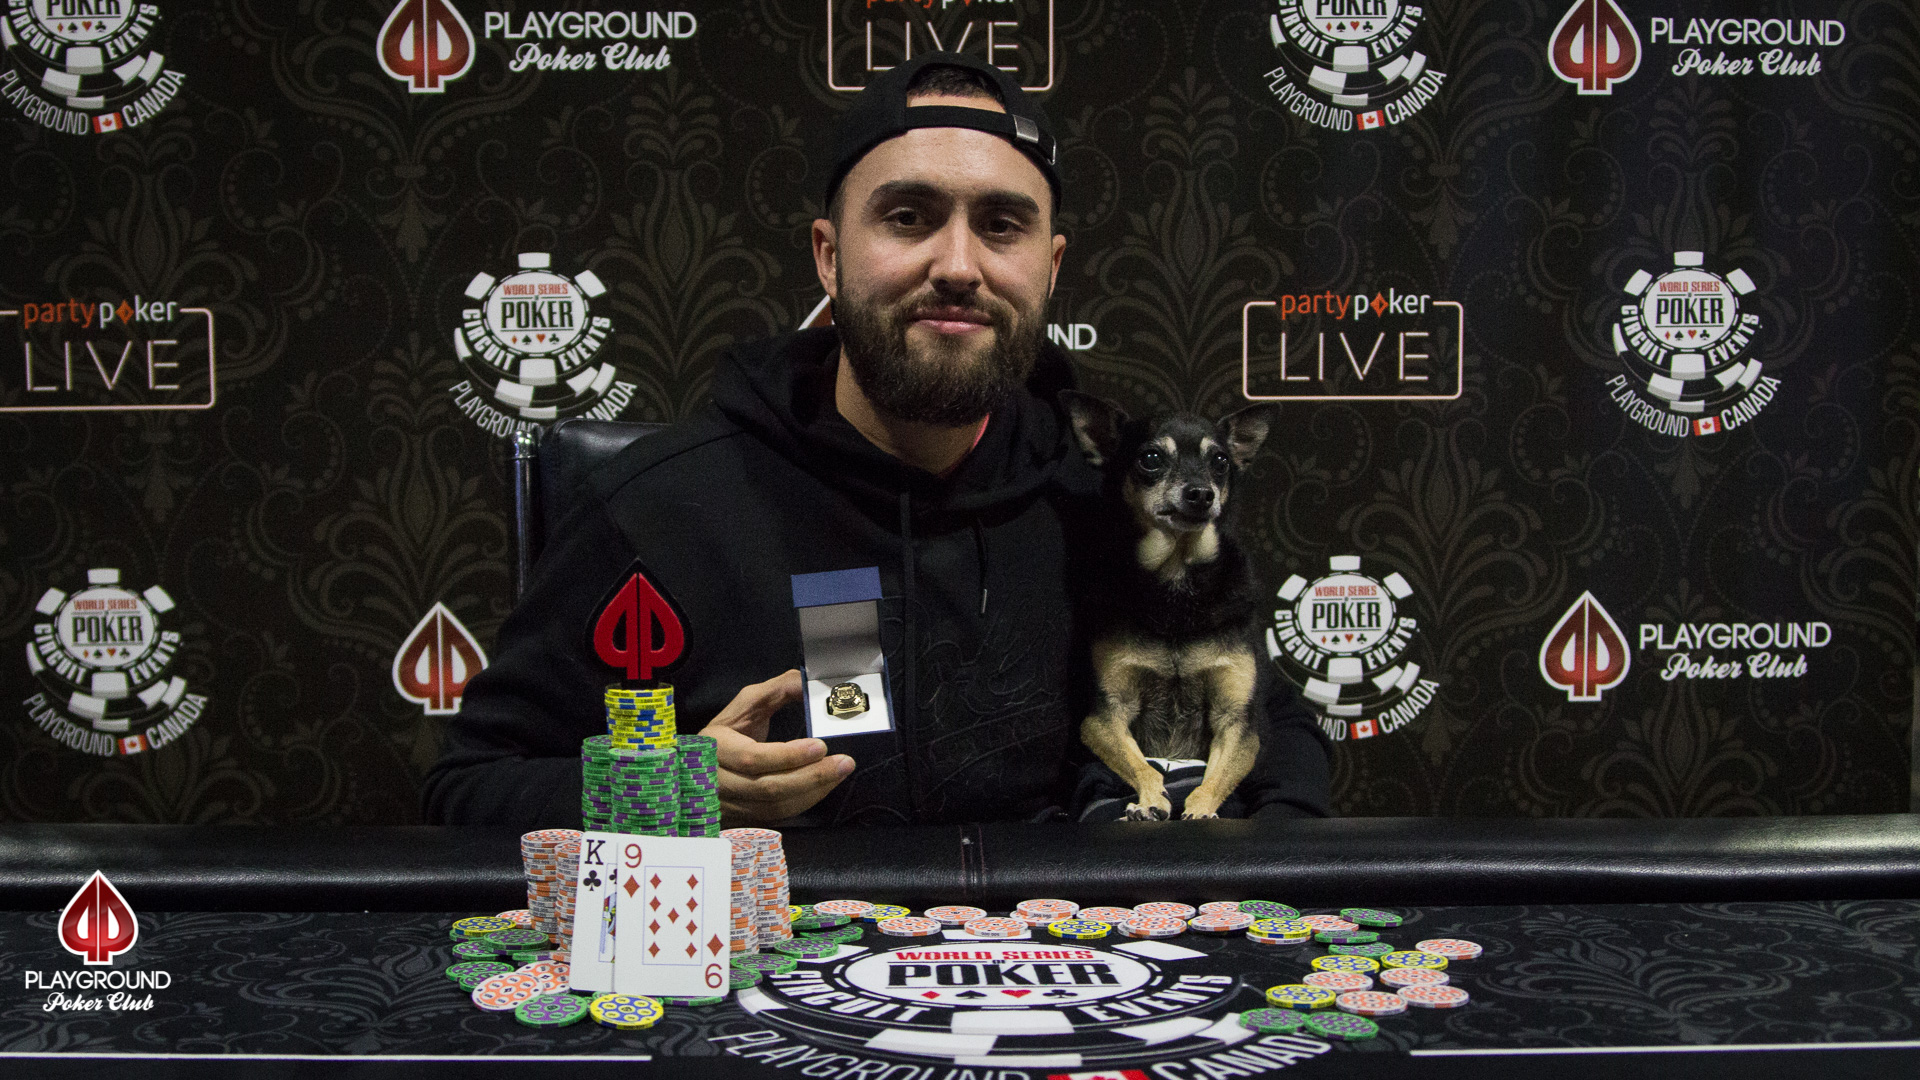 WSOP-C Playground winner